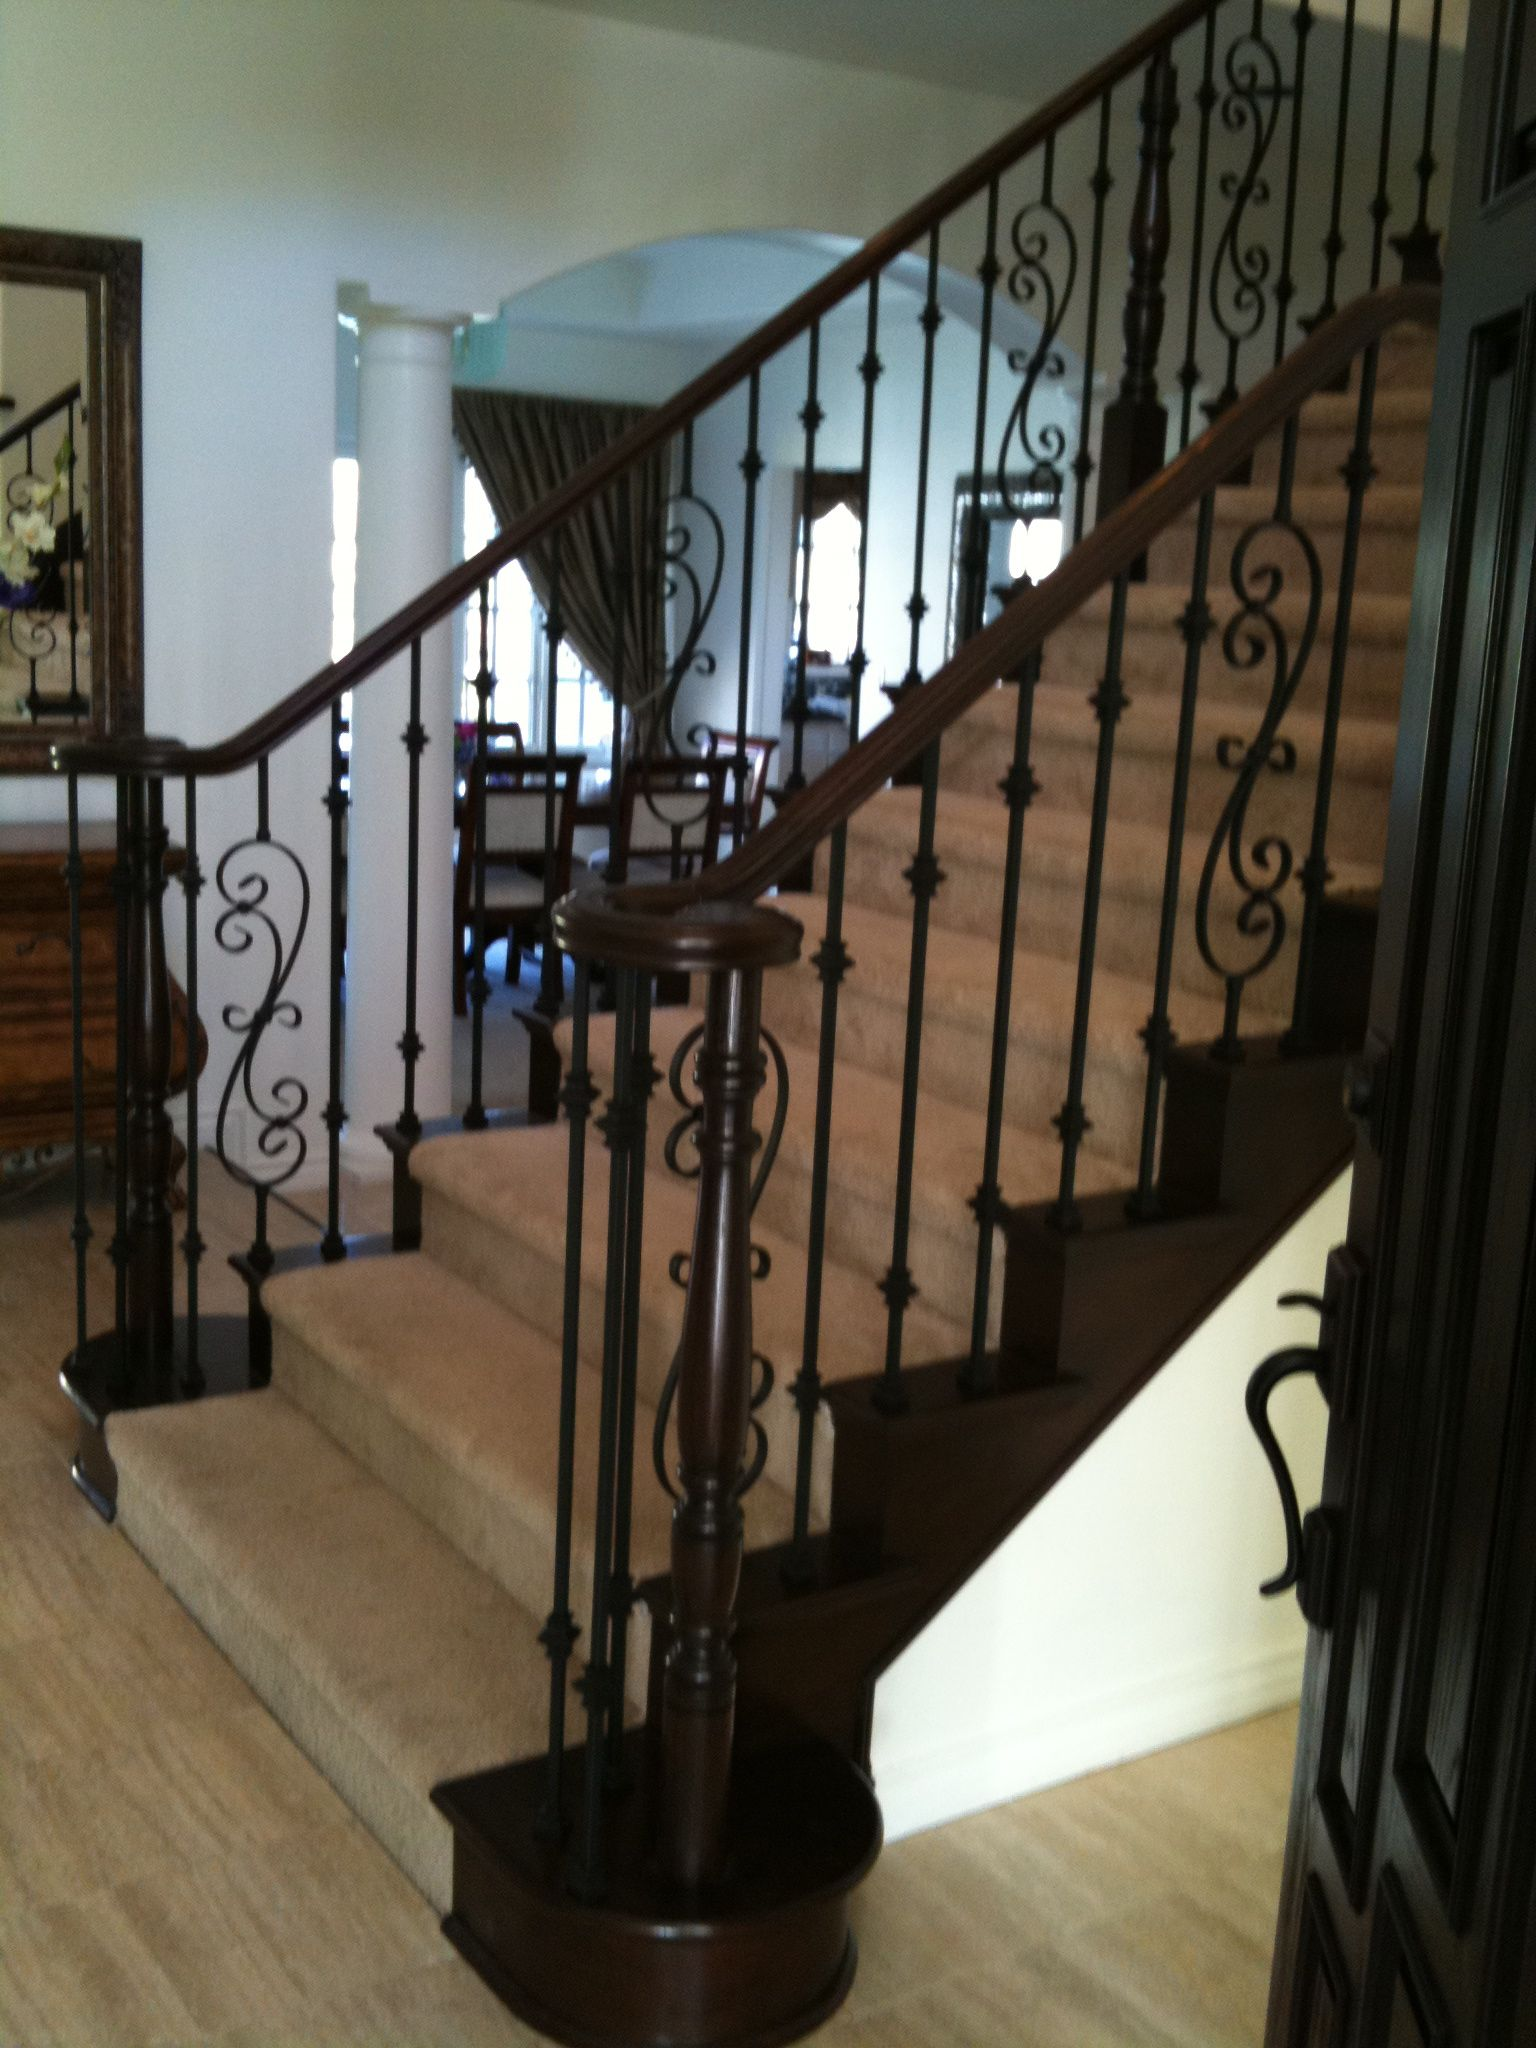 Charming Wrought Iron Balusters For Elegant Interior Staircase Design Appealing Dark Wrought